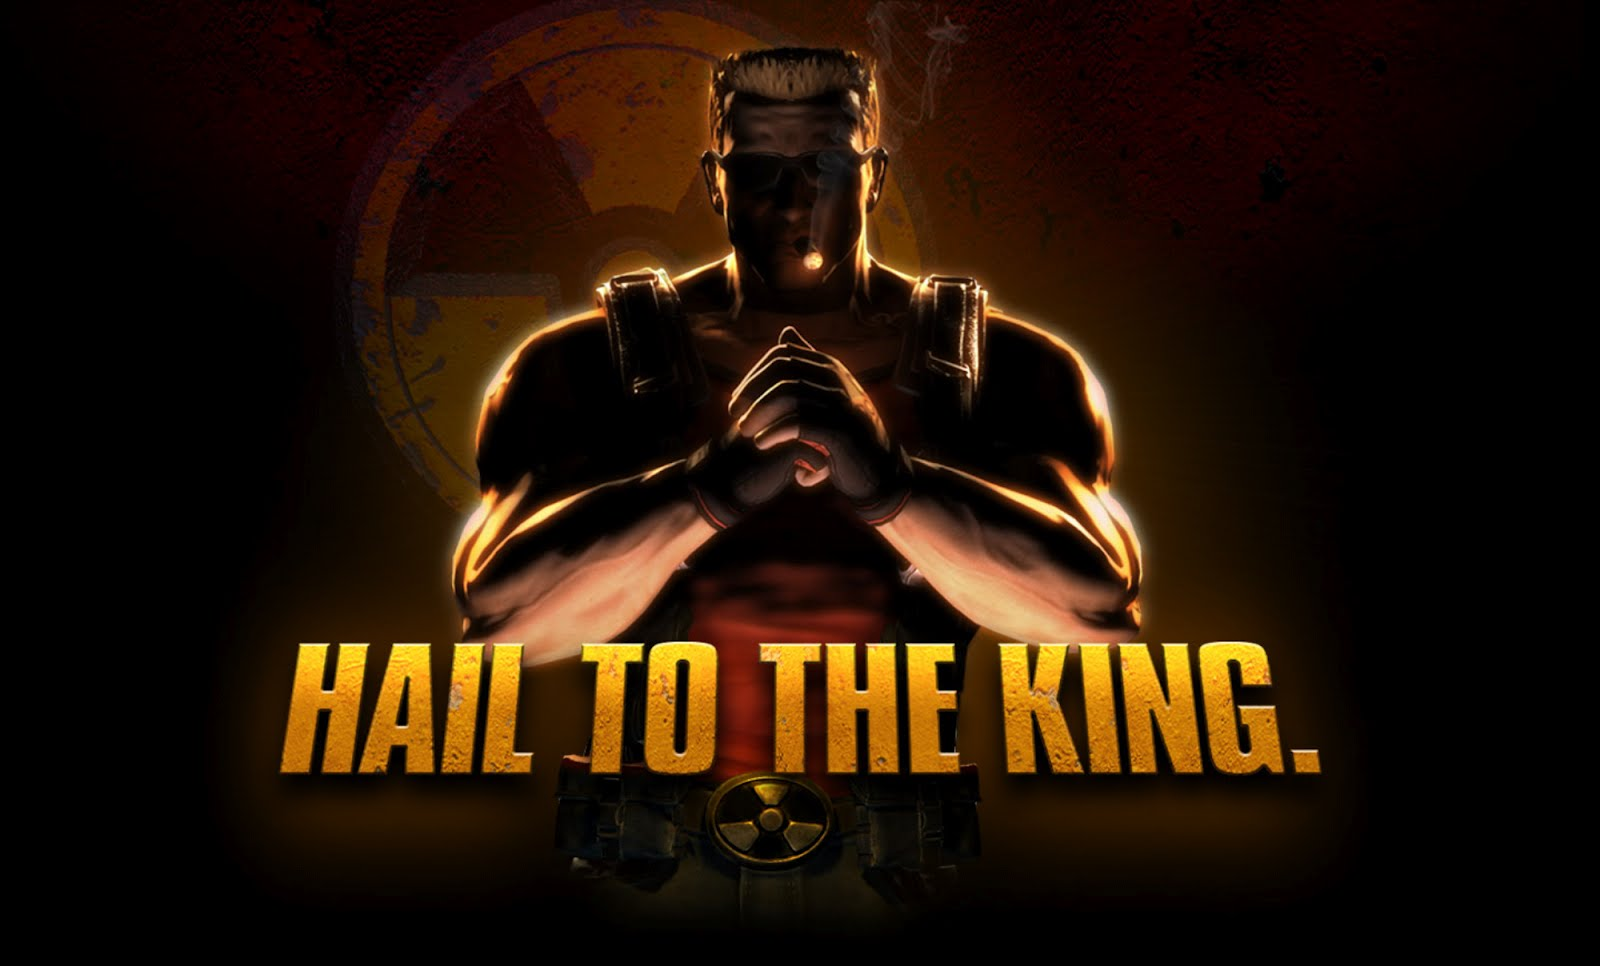 http://2.bp.blogspot.com/-eA7CVddP2qM/UCEt9k1AmuI/AAAAAAAAAkw/71--yqcMyb4/s1600/hail-to-the-king-baby-duke-nukem-forever-wallpaper.jpg